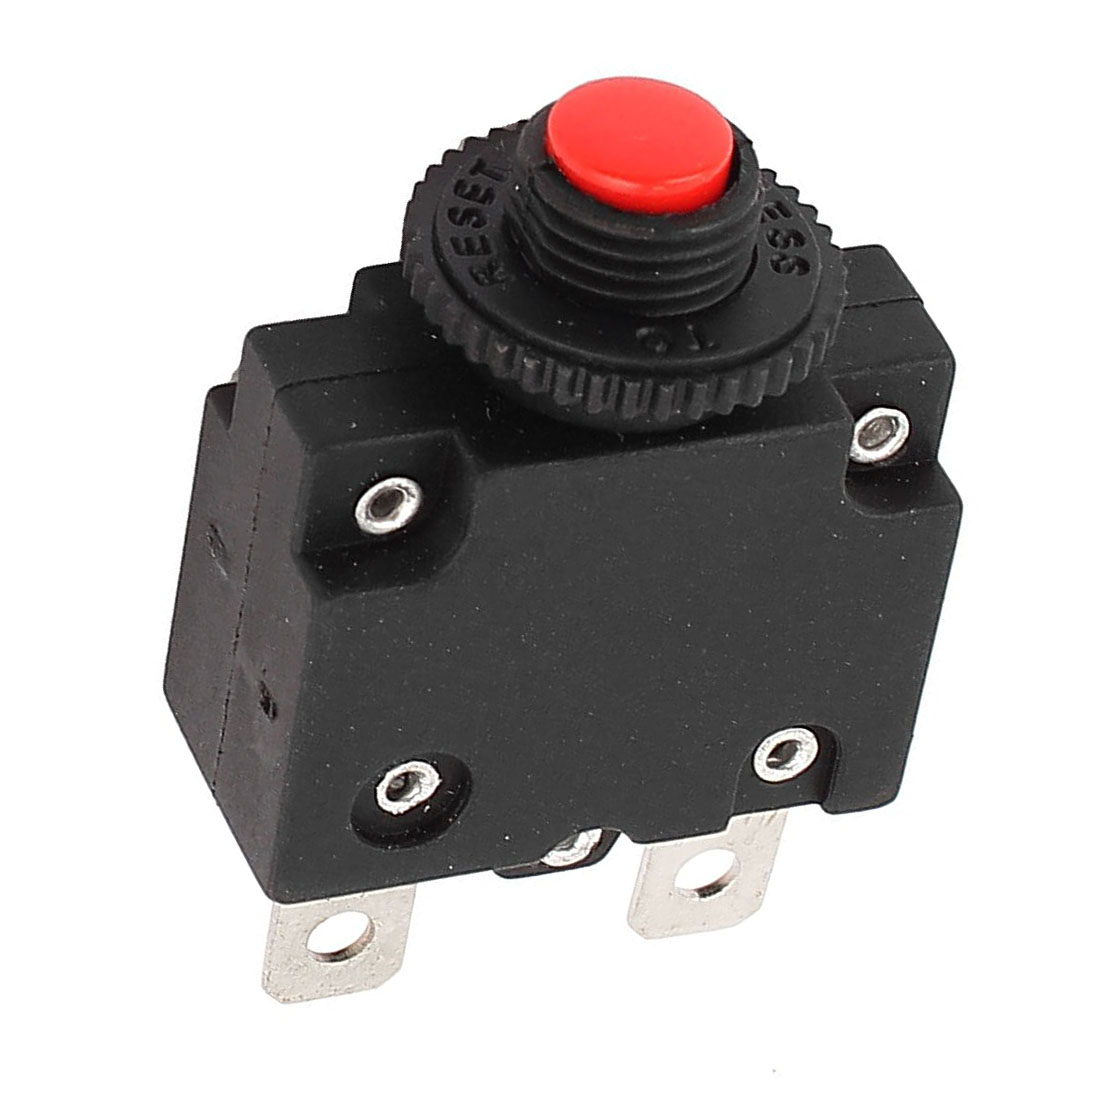 hight resolution of details about ac 125 250v 20a air compressor circuit breaker overload protector switch k3s6